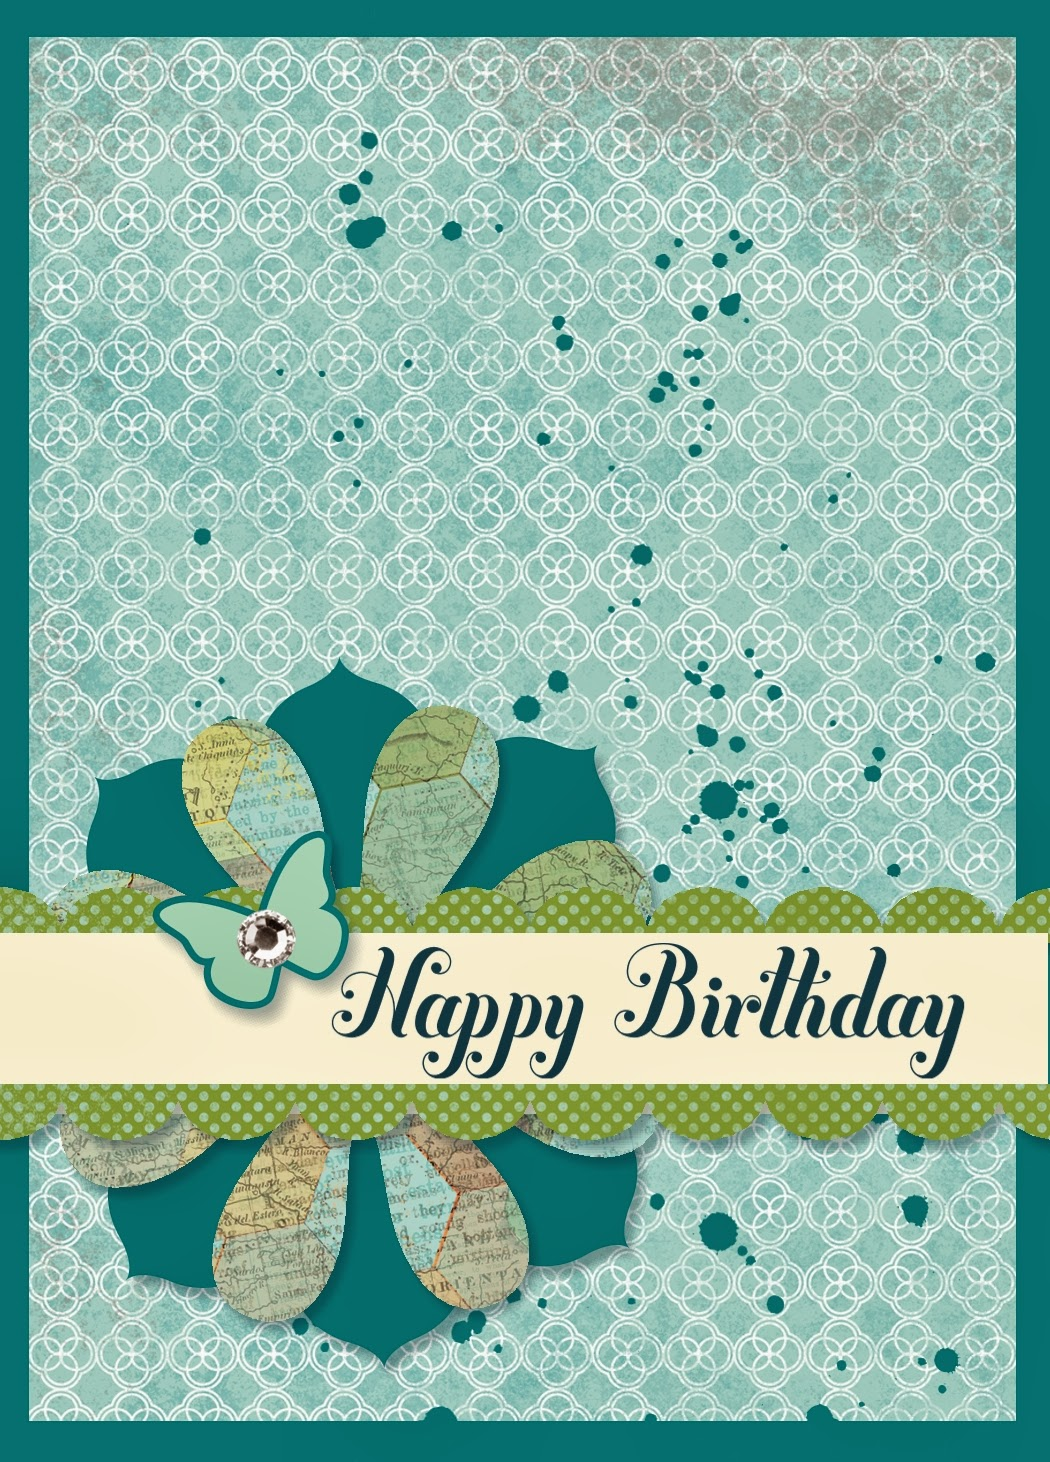 Emergency Birthday Card created with My Digital Studio (MDS) by UK Demonstrator Bekka Prideaux - check out her blog here